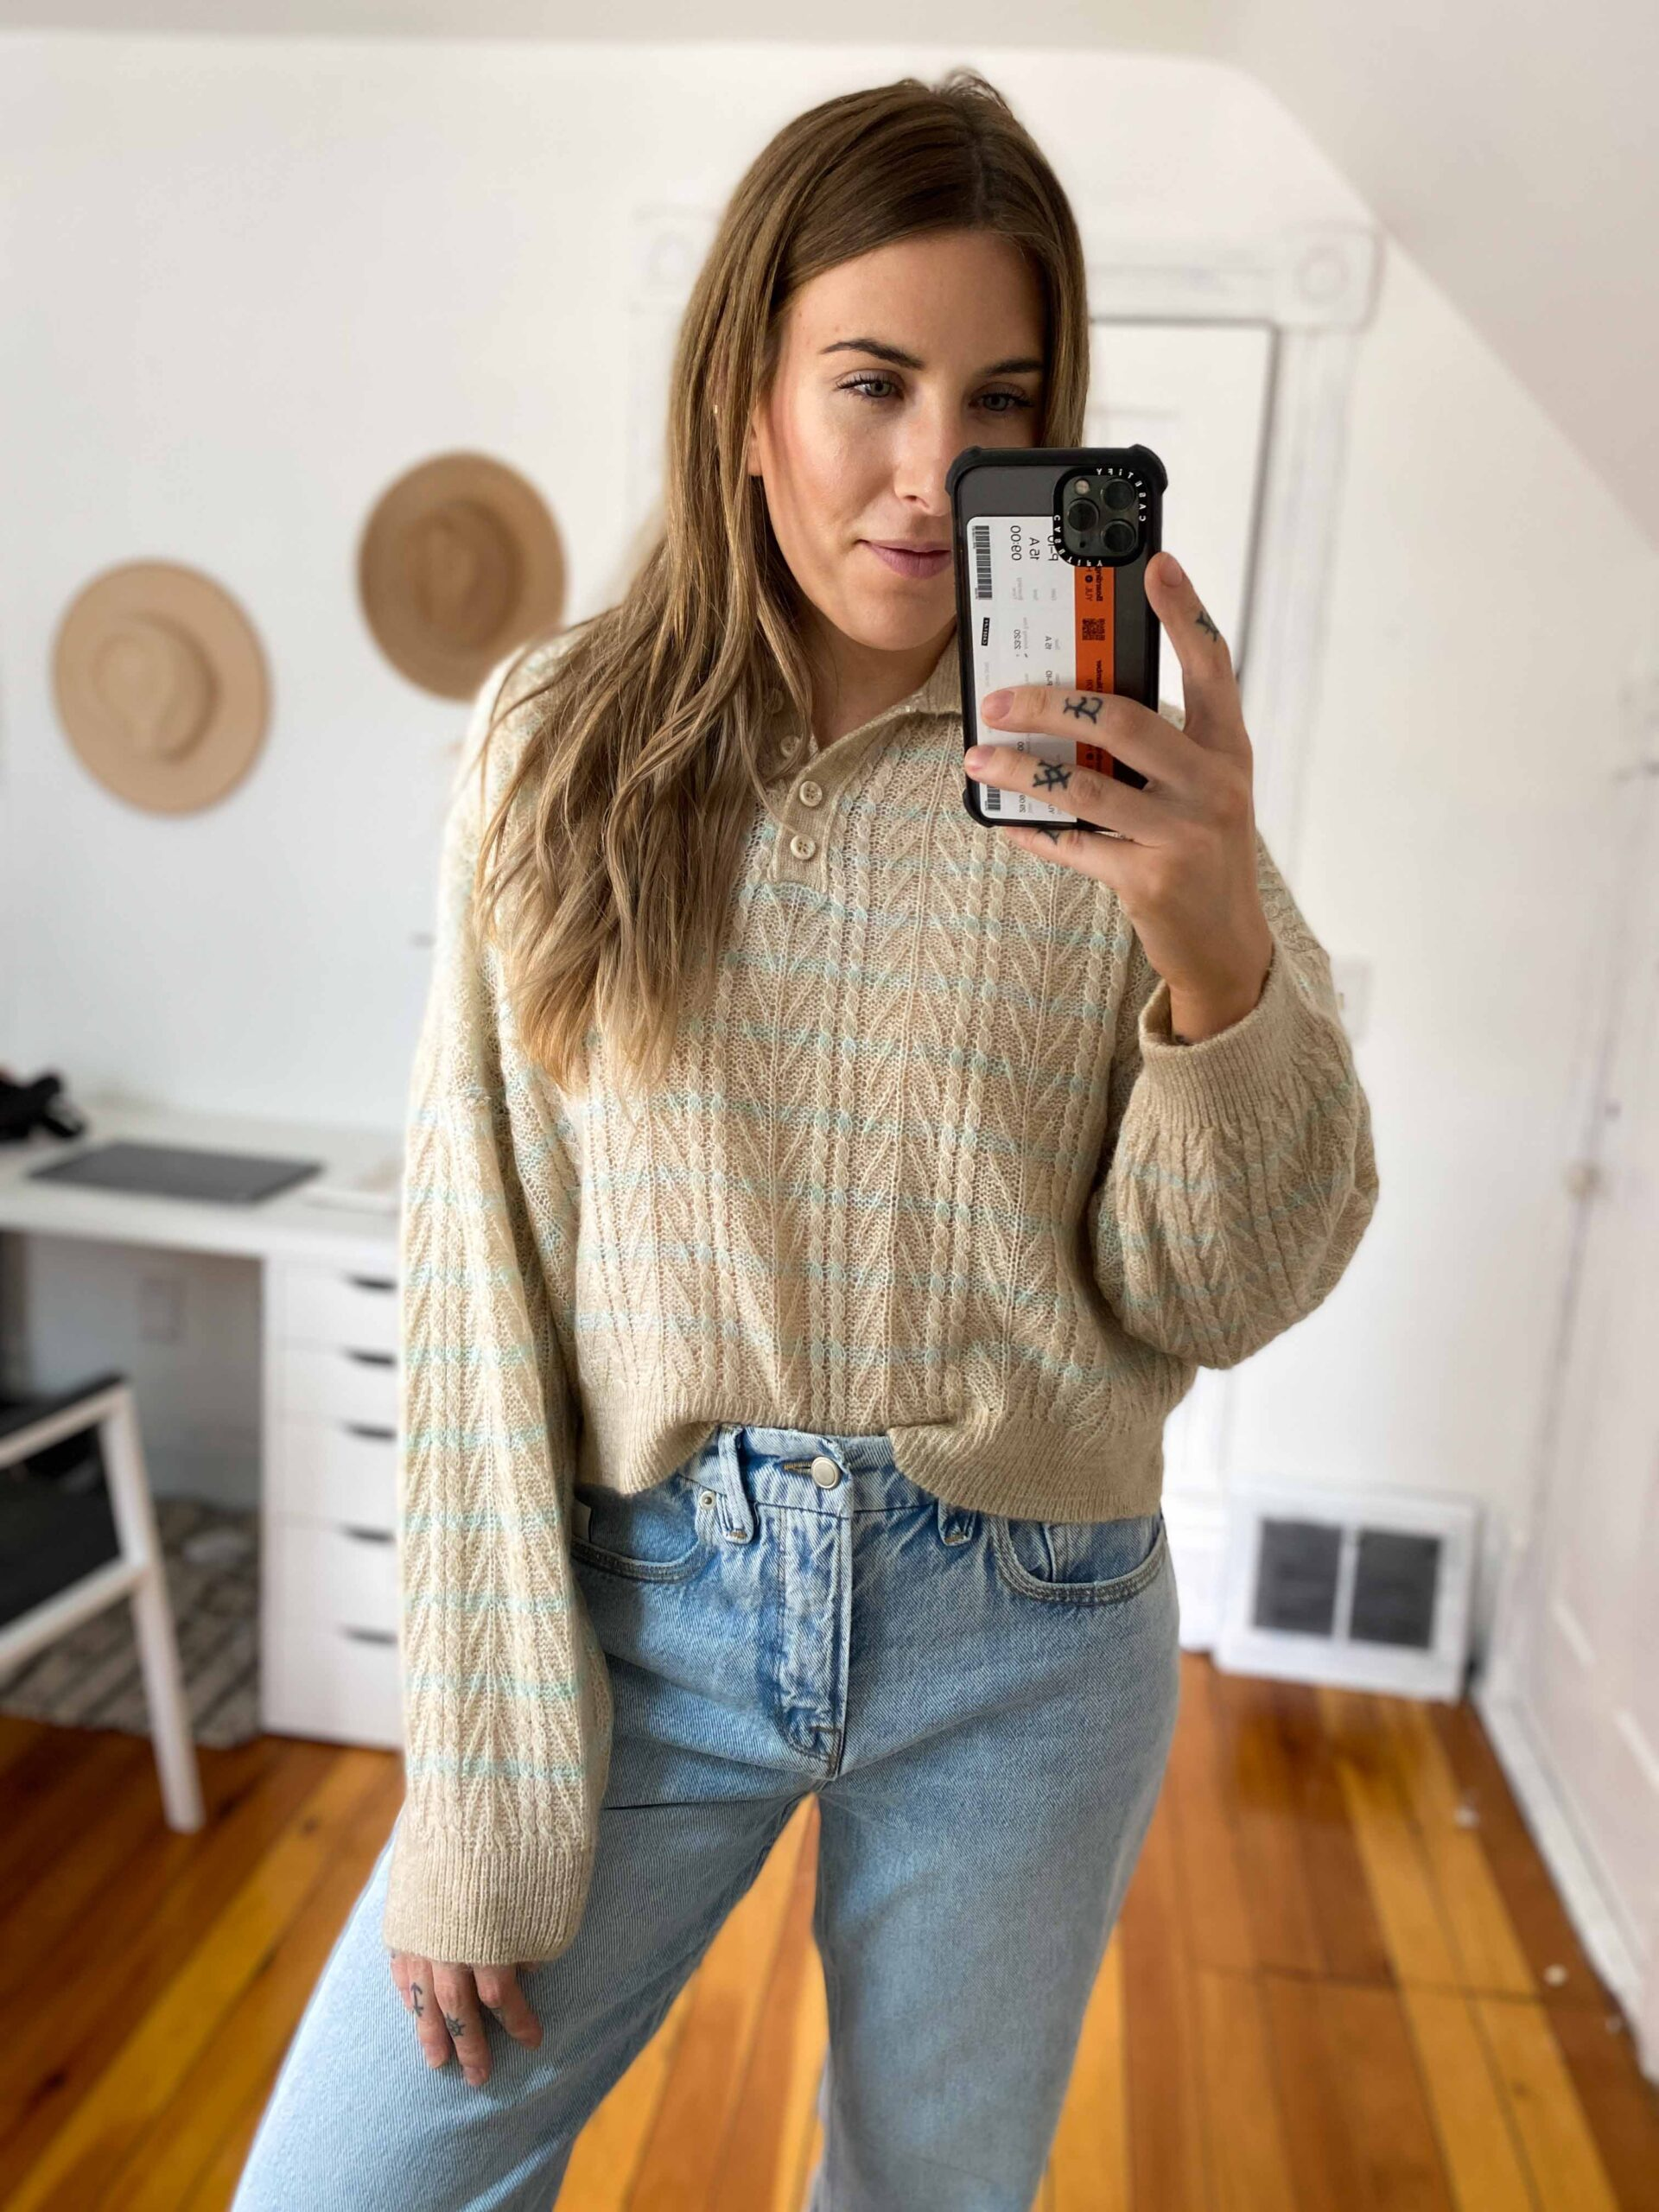 I appreciate a crop top moment + a laid-back baggy look, but it's healthy to keep some balance, ya know? Cute summer tops that hit at just the right spot for high-waist jeans.